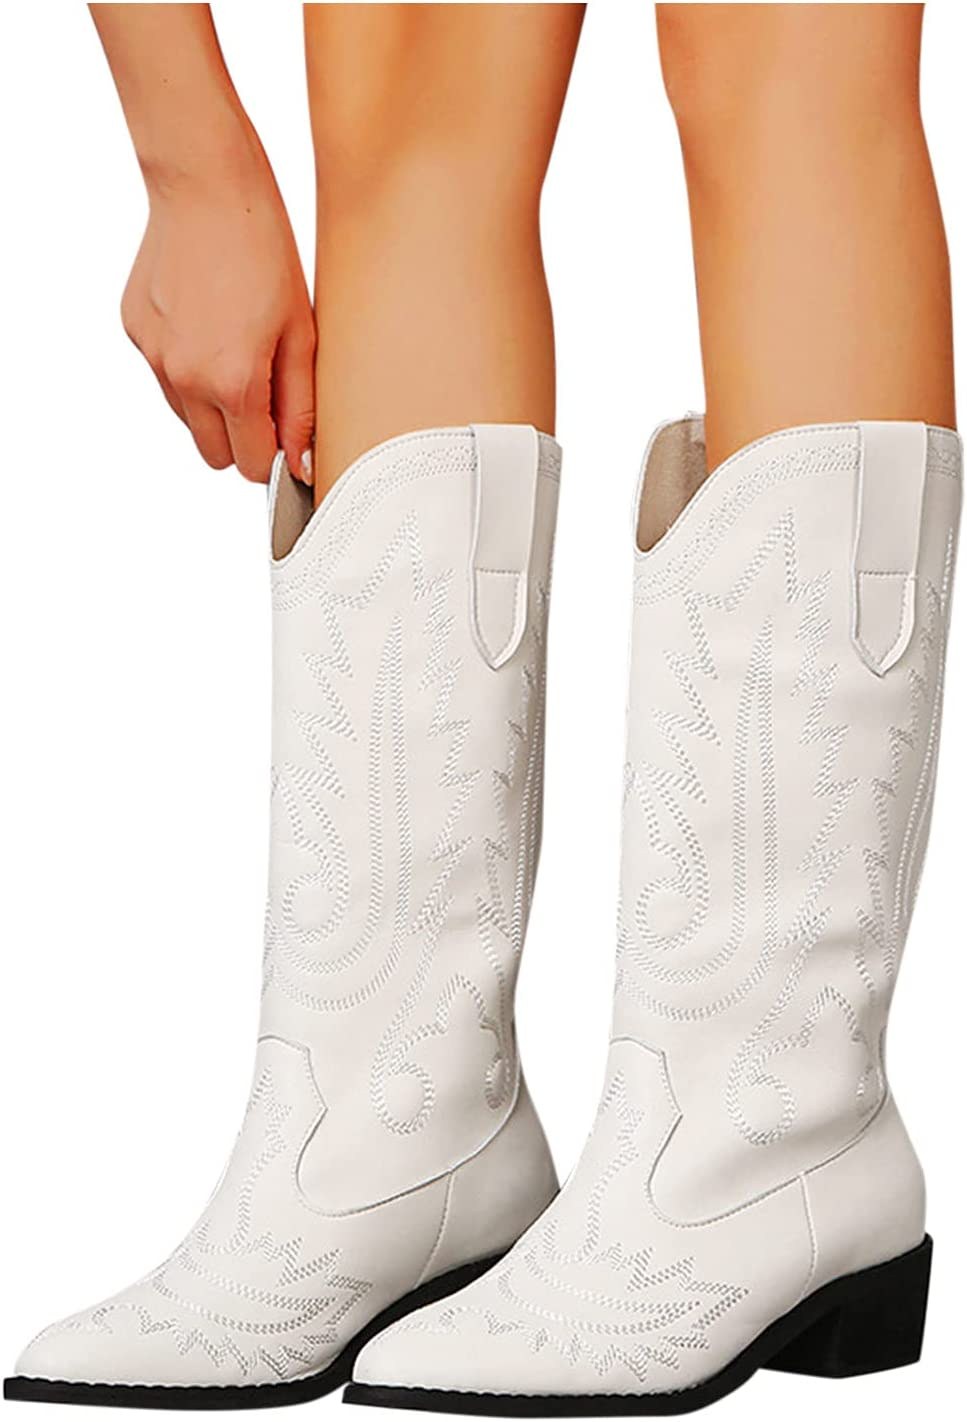 Boots for Women Shoes Boots Boots Mid Calf Booties Fashion Retro Embroidered Chunky Heel Bootie Short Boots Winter Vintage Cowboy Thick-Soled Heels Comfortable Motorcycle Boots (White, 8.5)